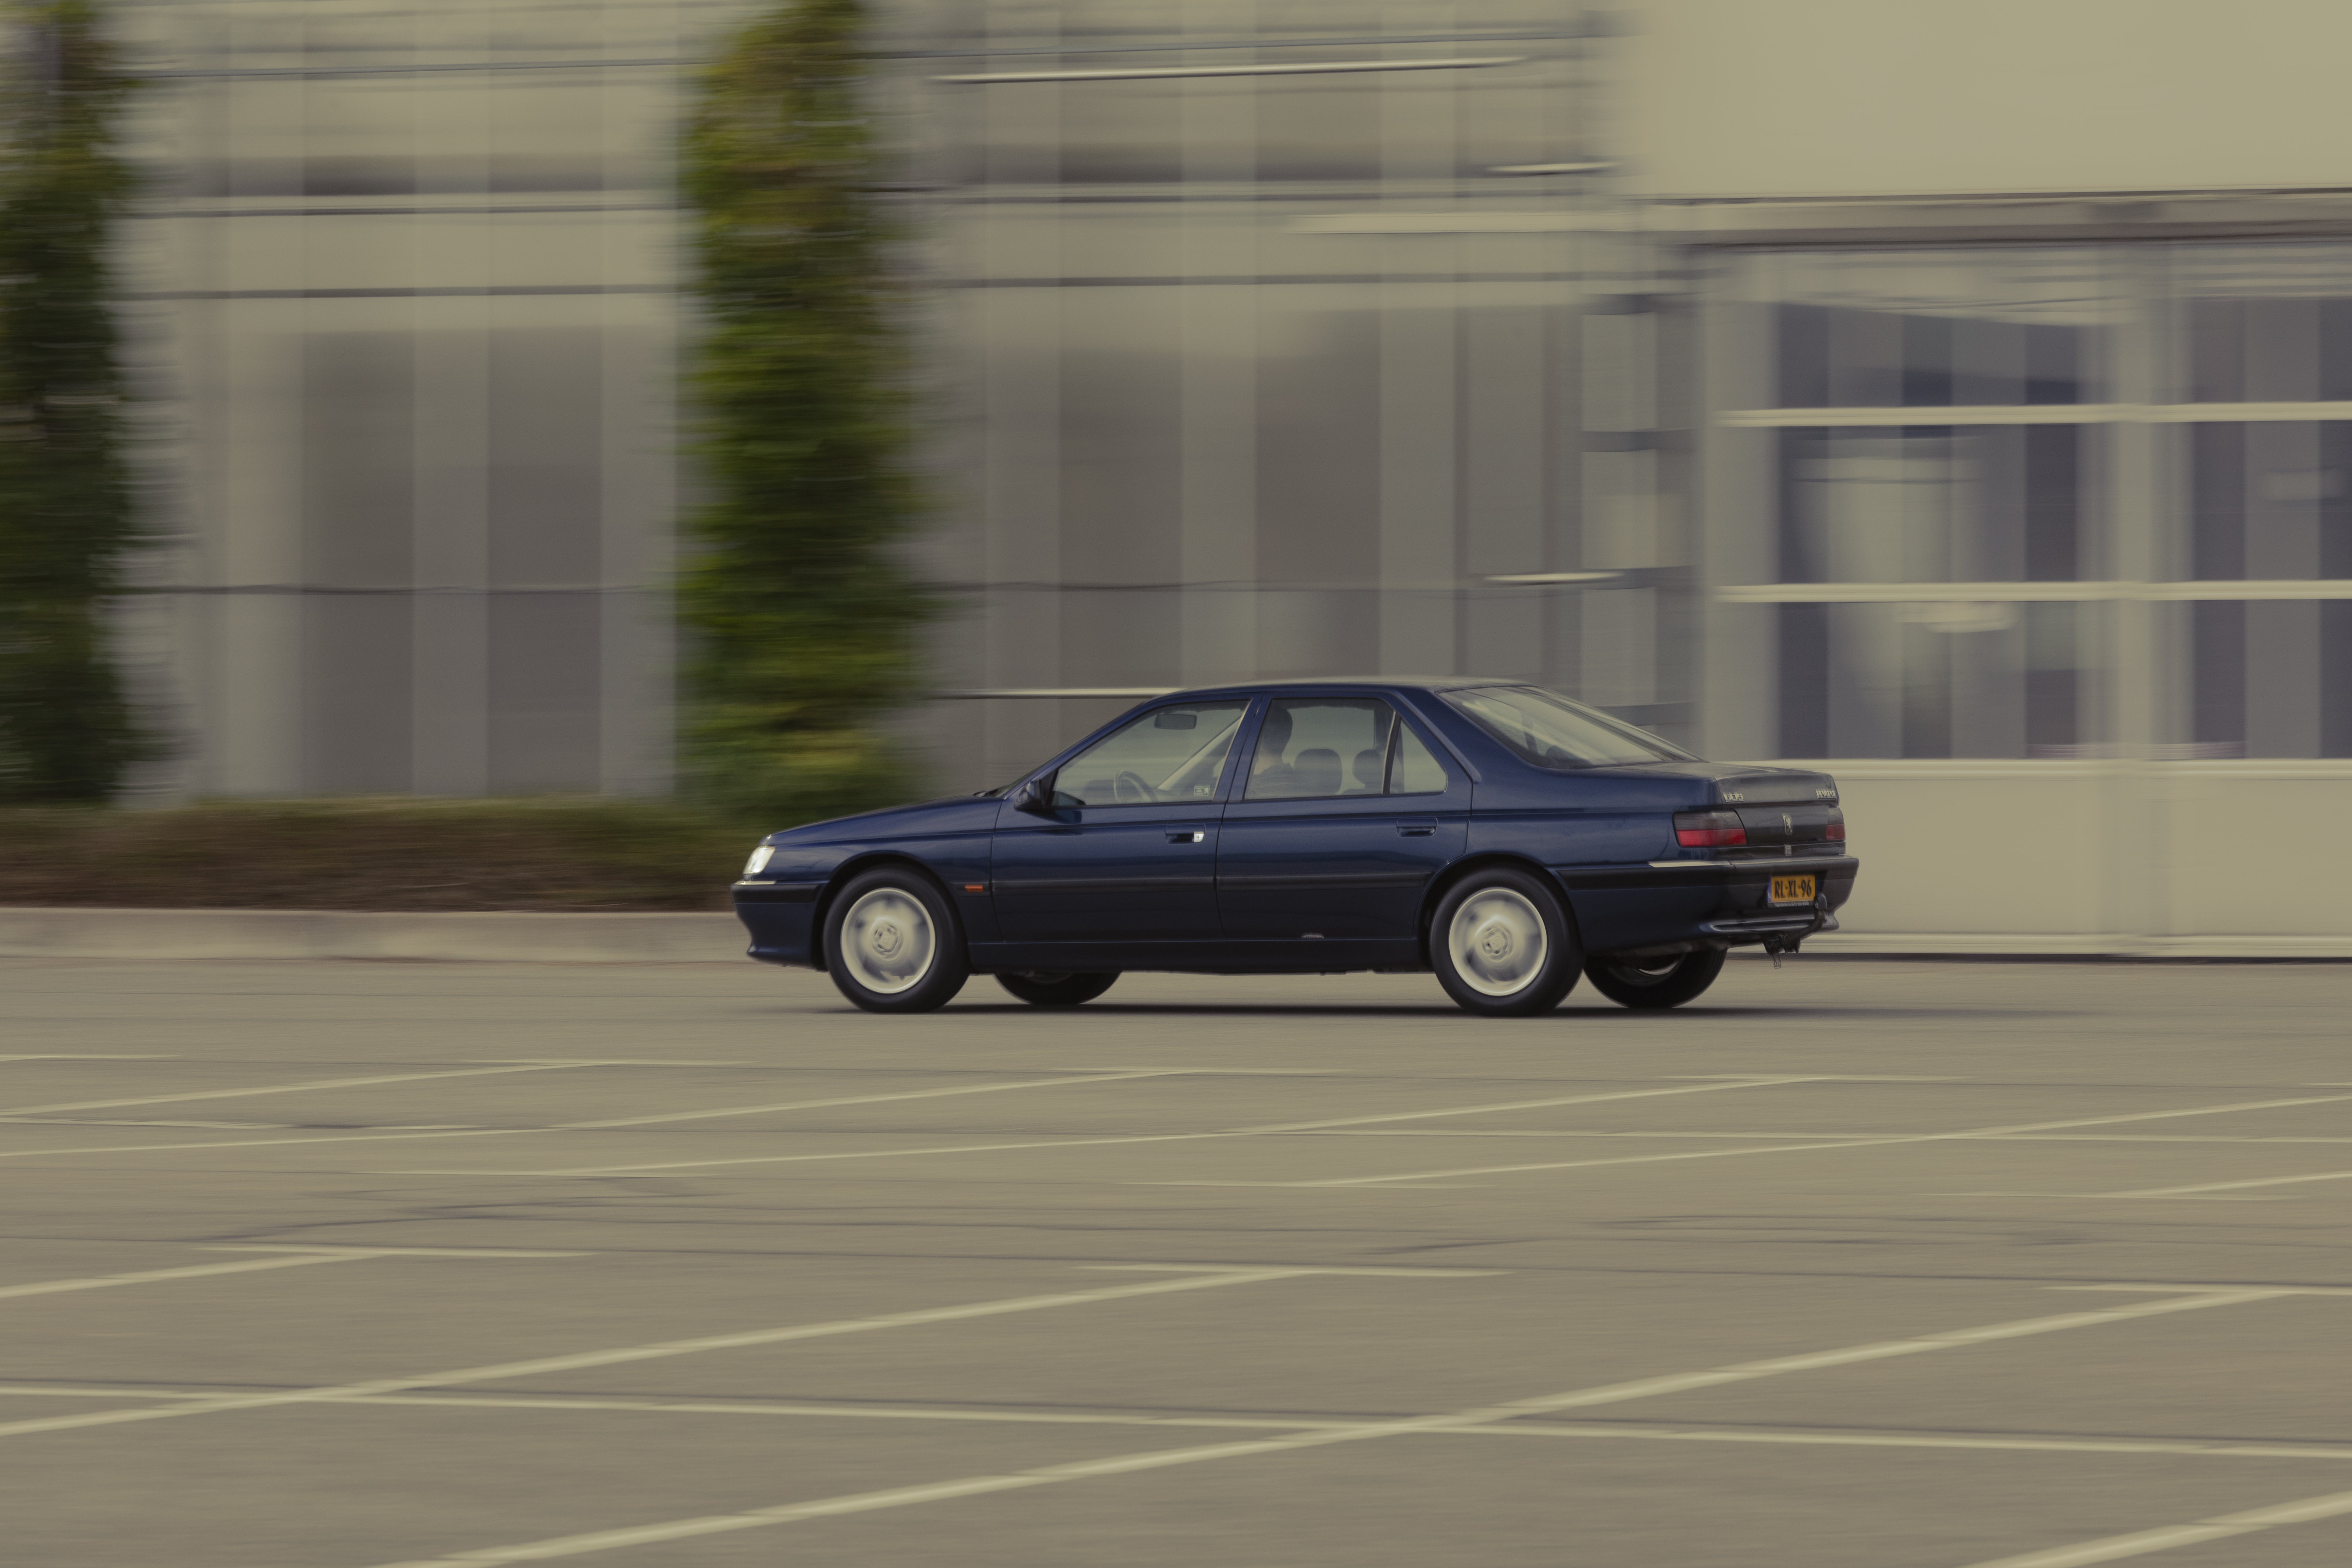 Peugeot 605 Volvo S90 occasions